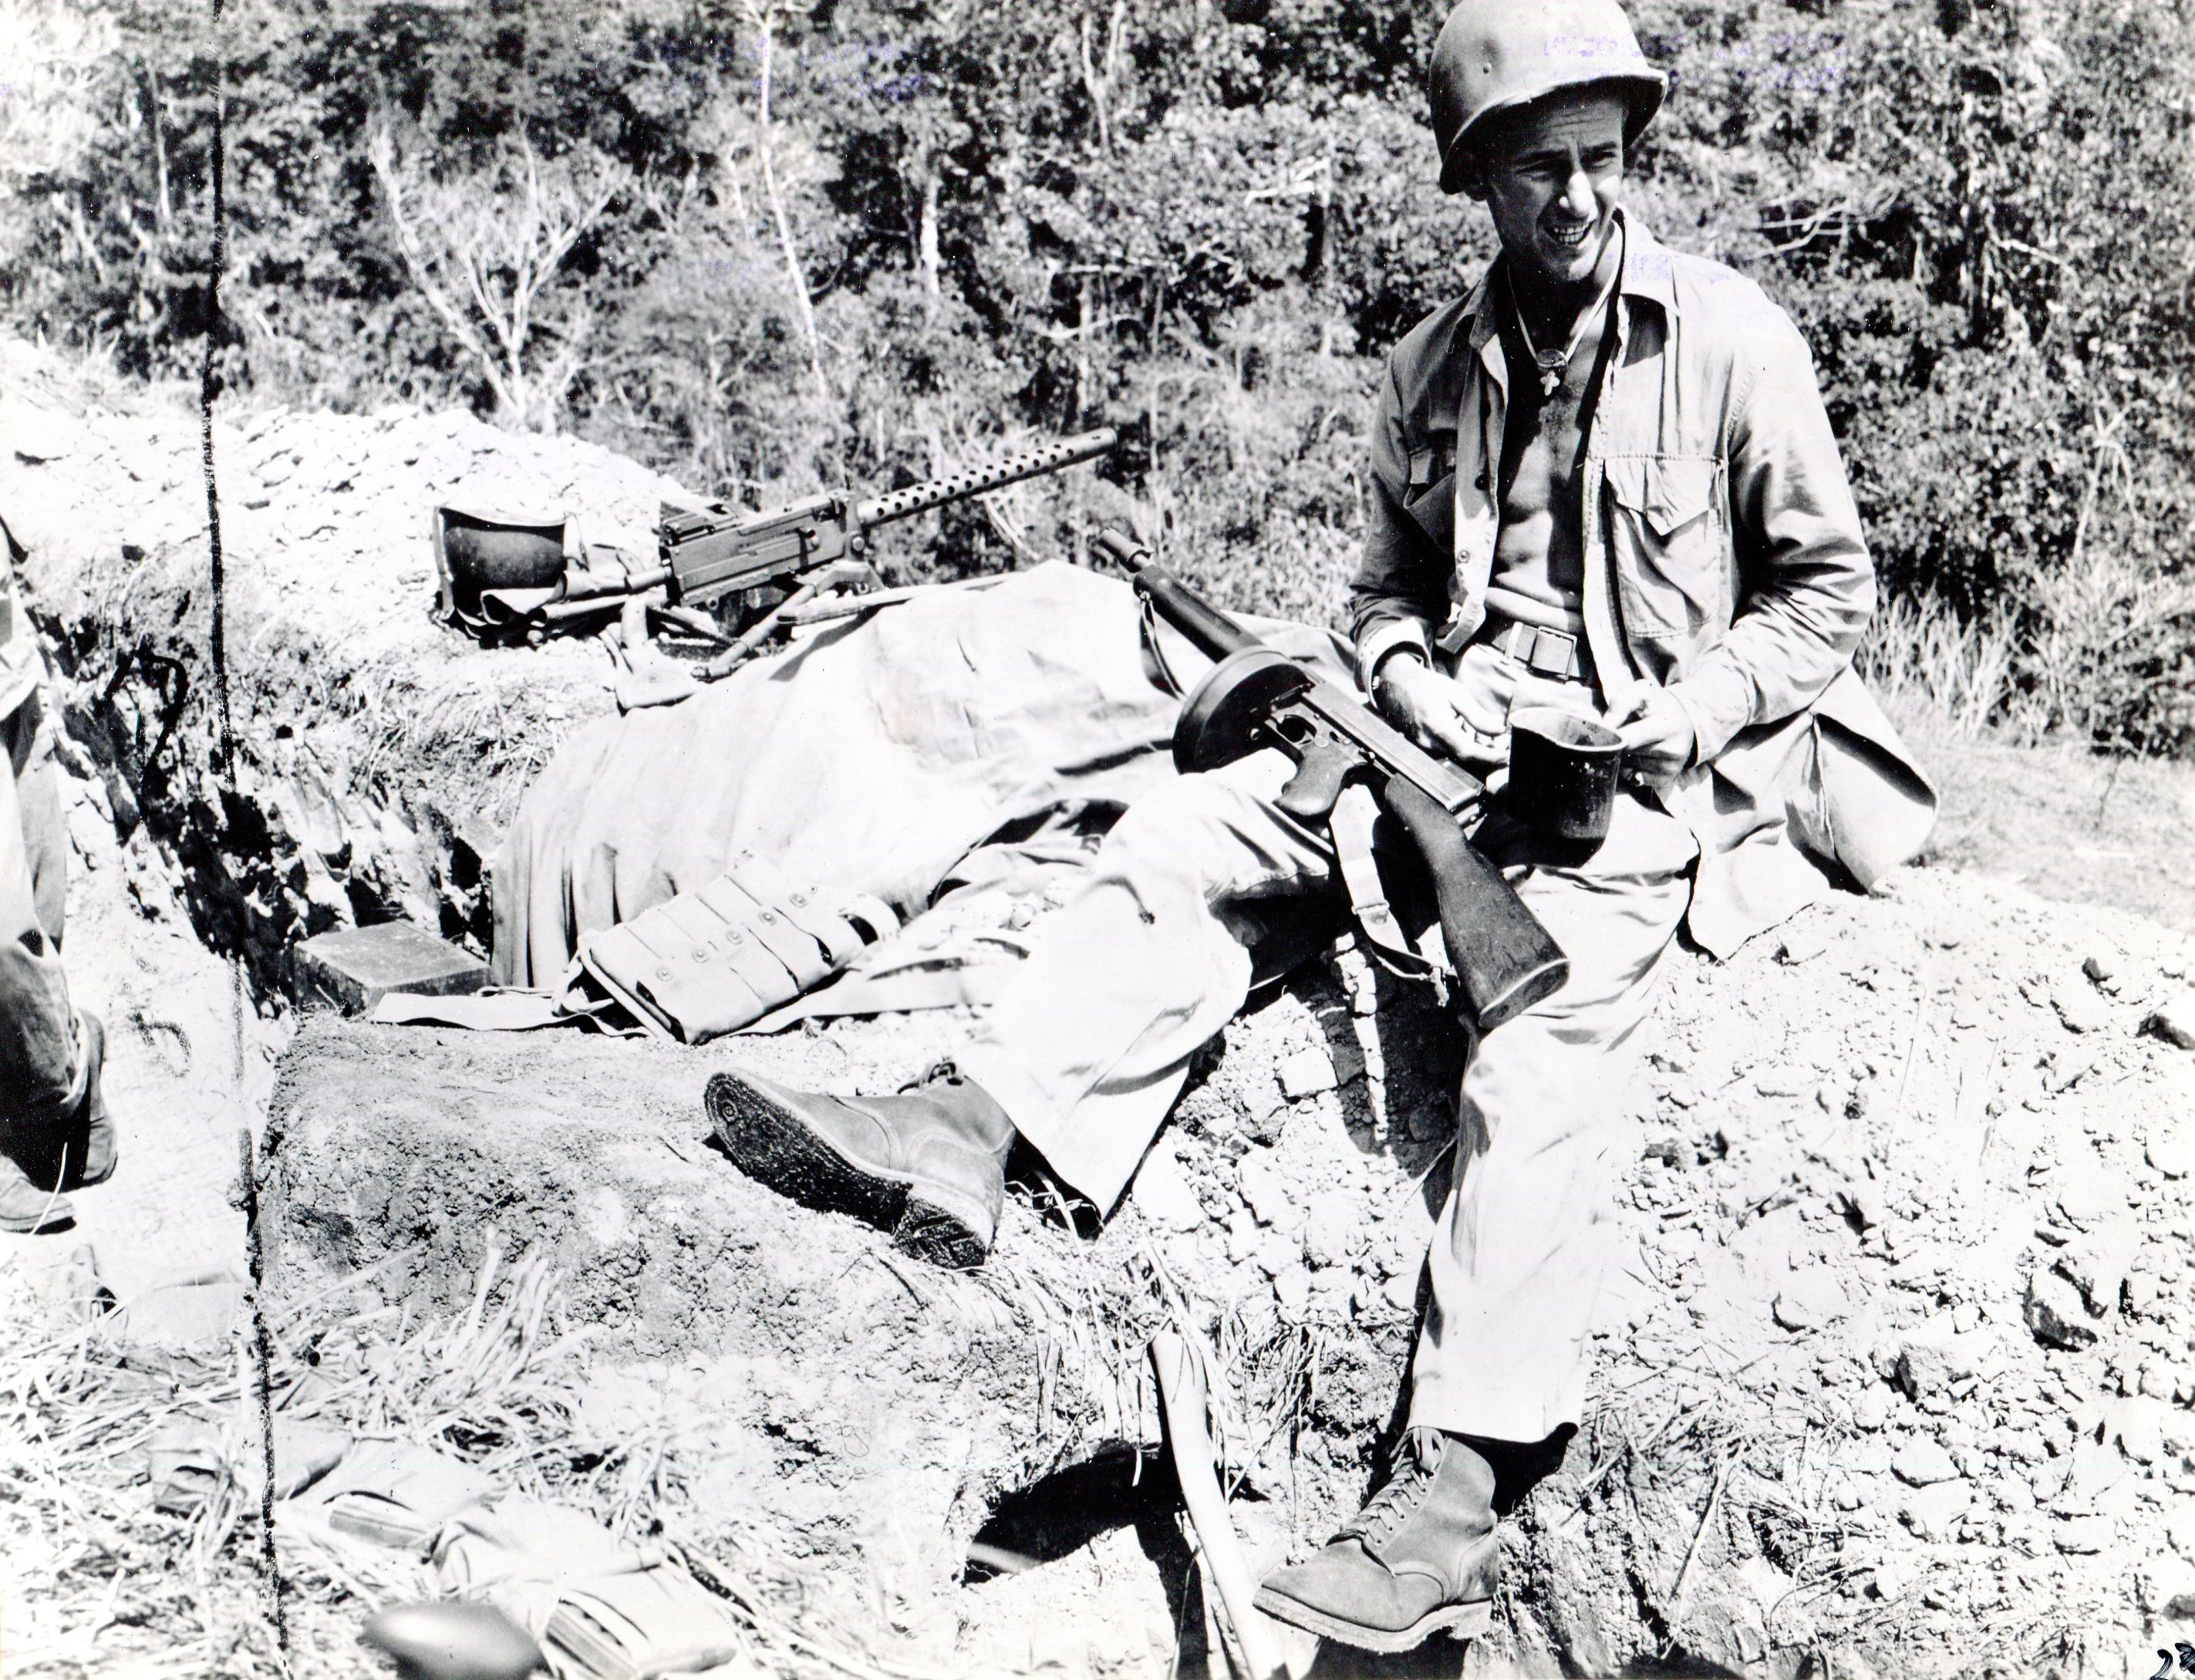 Machine gunner on Guadalcanal